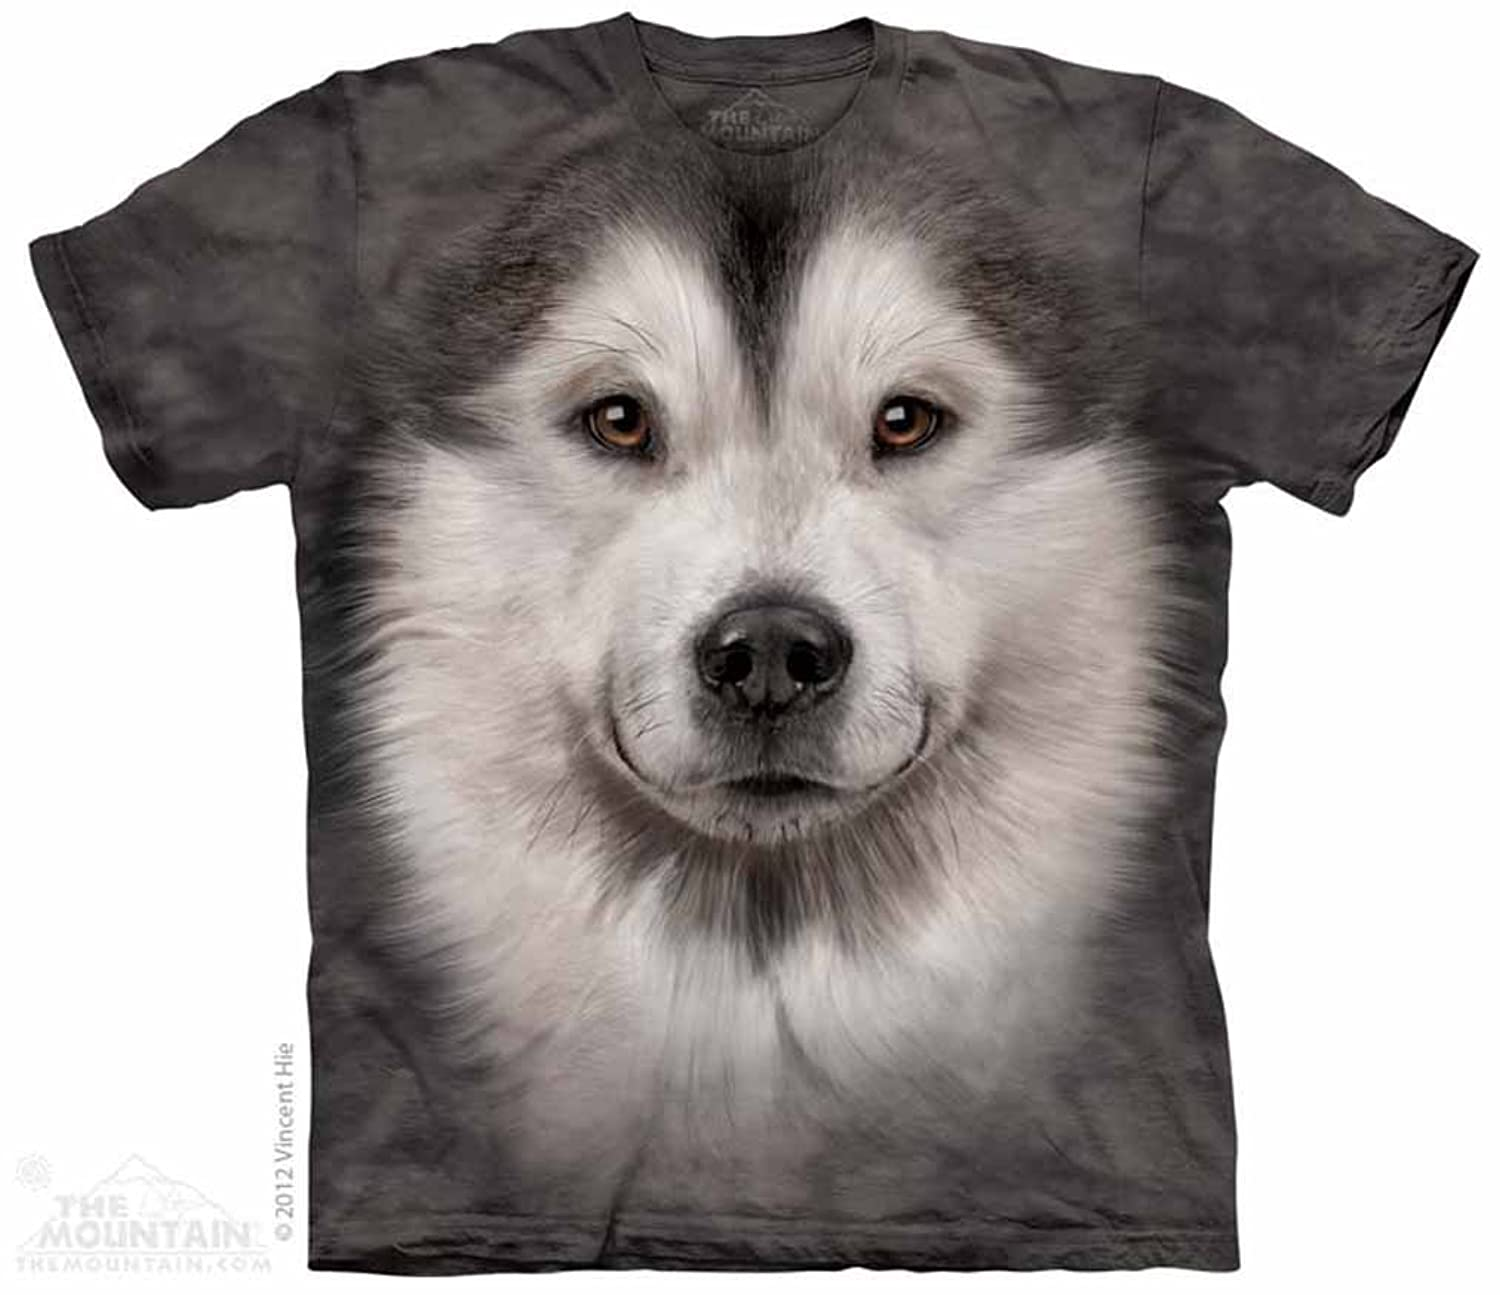 Husky and Malamute awesomely detailed HUGE FACE t-shirts. 61JEQ2nnEiL._UL1500_